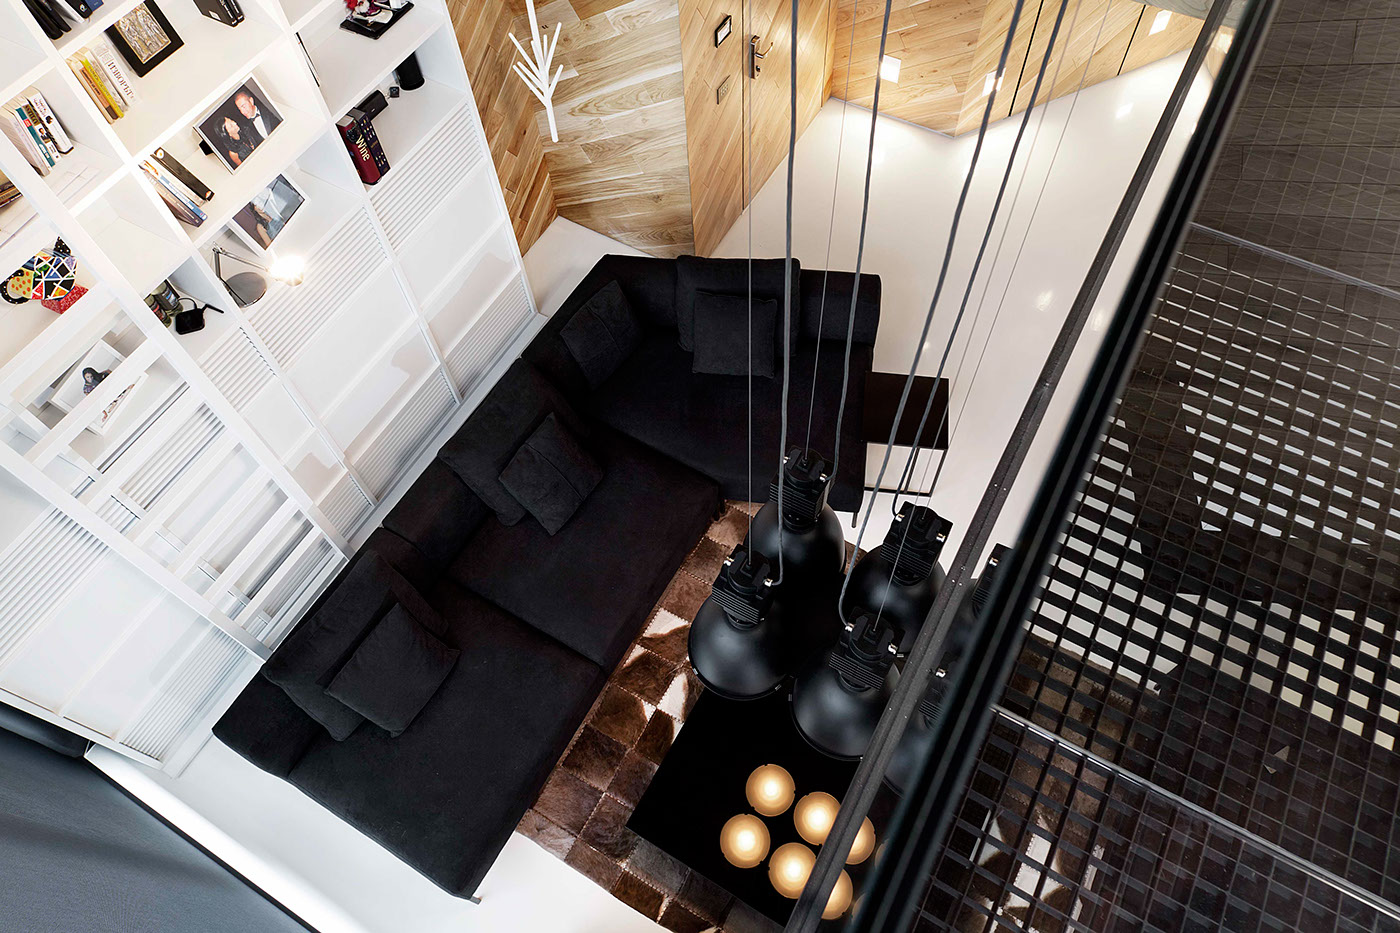 studio mode3 Loft Apartment By Studio Mode